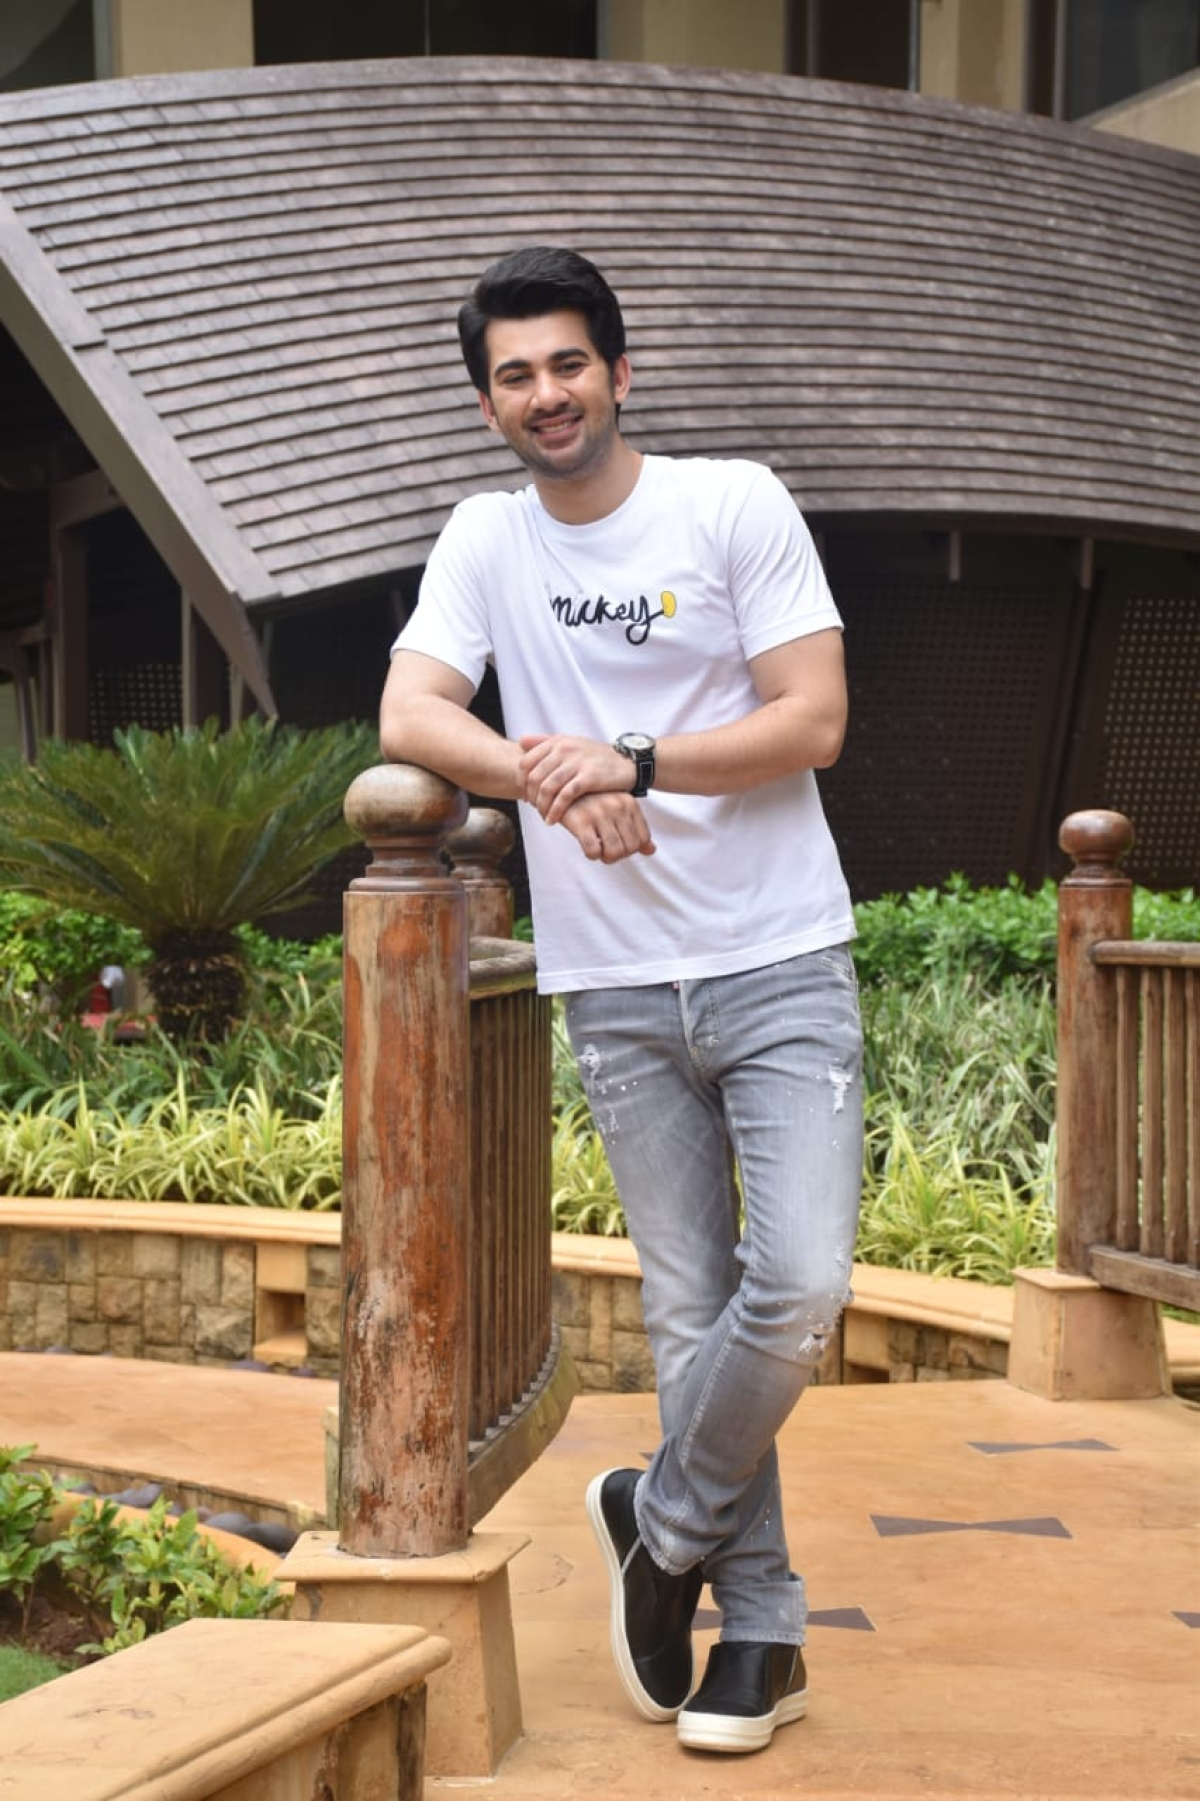 Sunny Deol's son Karan Deol and actress Sahher Bambba were clicked by paparazzi as the duo is promoting their upcoming film 'Pal Pal Dil Ke Pass'.